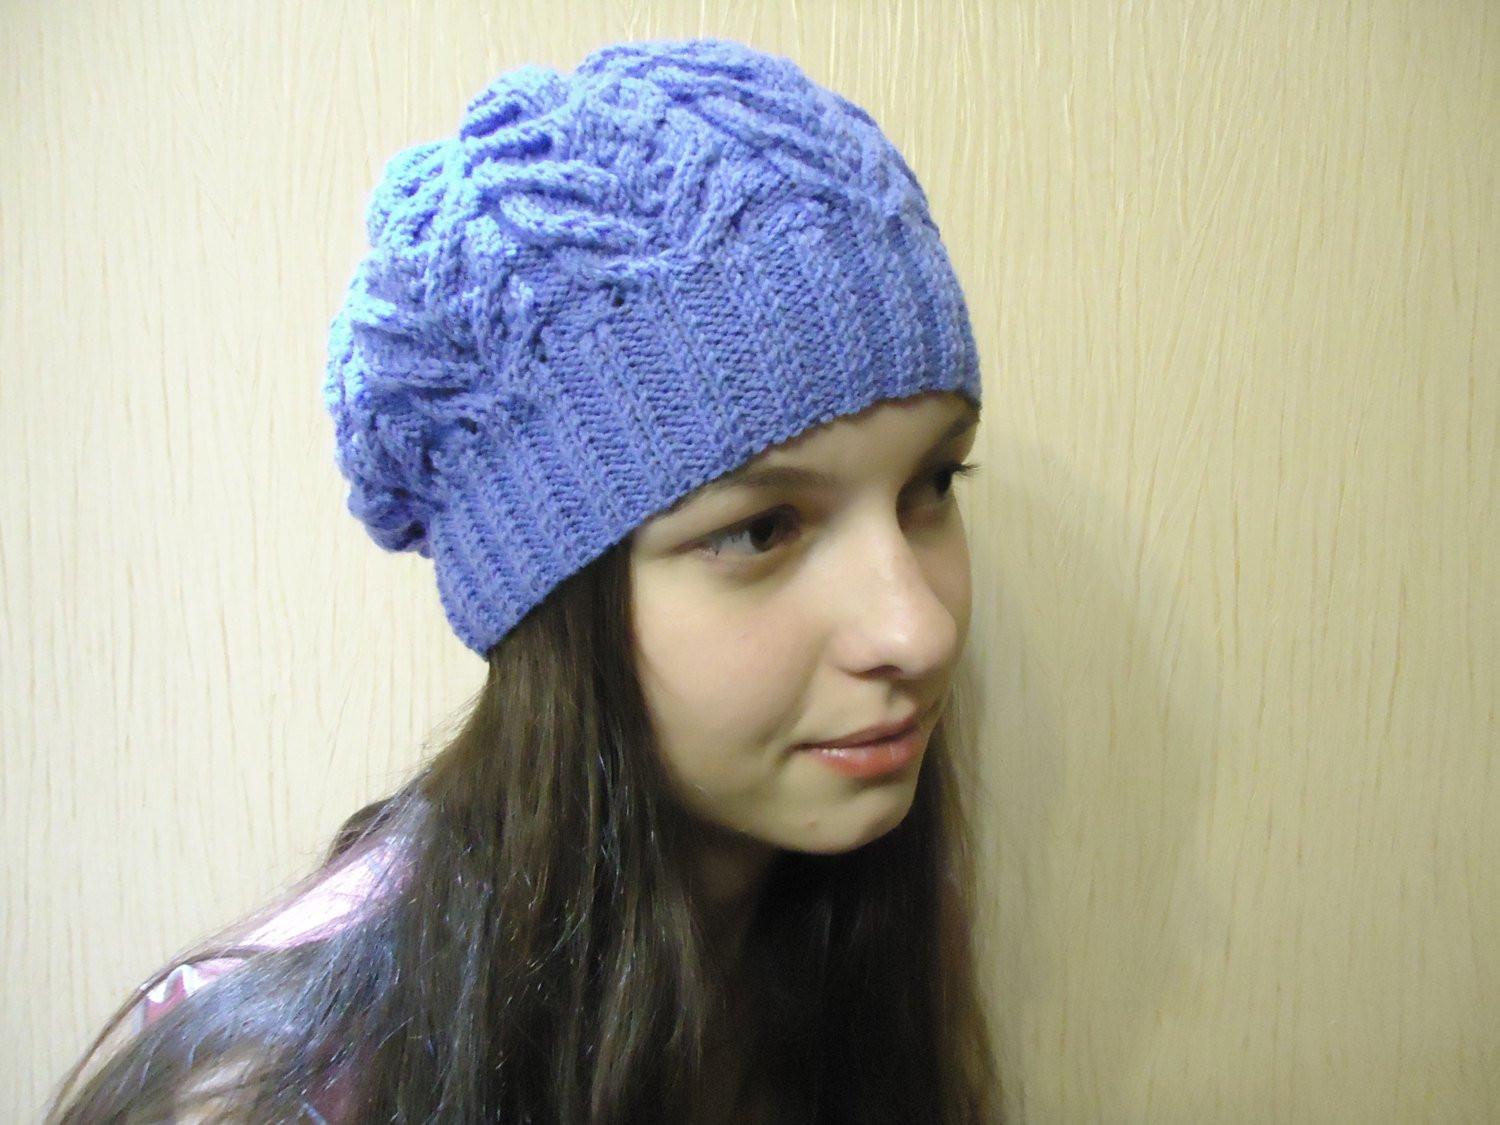 Womens Knit Hats Fresh Womens Light Blue Hat Knit Hats Womens Beret Womens Knit Of Innovative 50 Images Womens Knit Hats